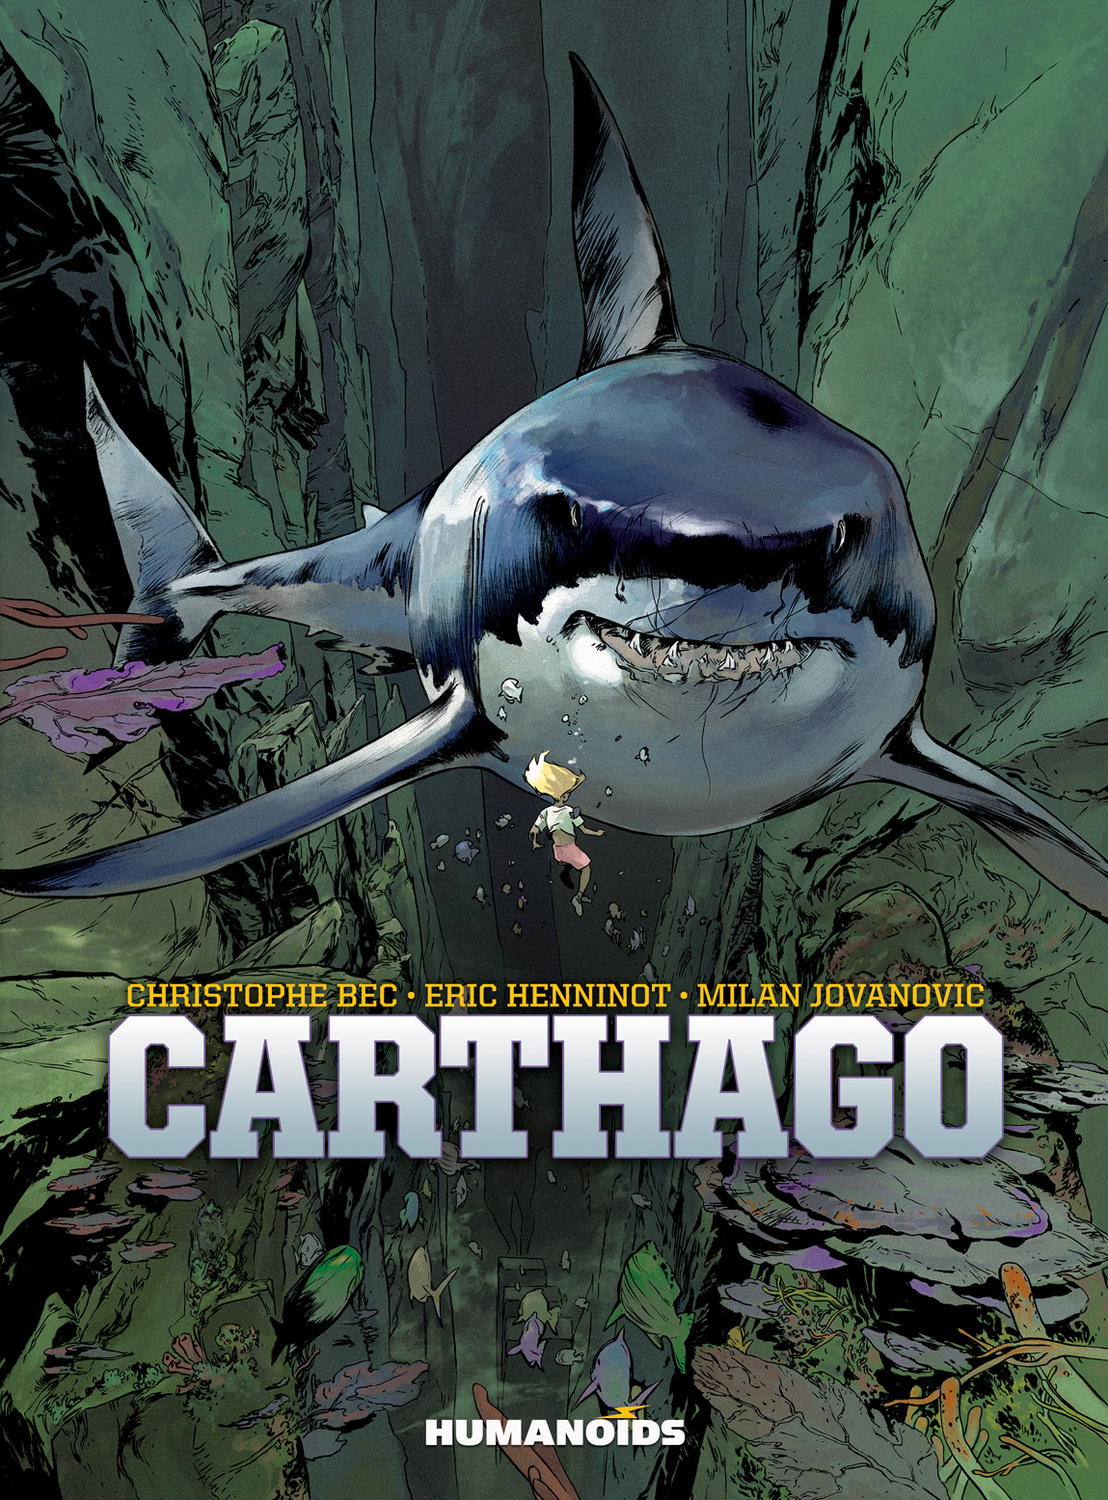 Carthago - Hardcover Trade